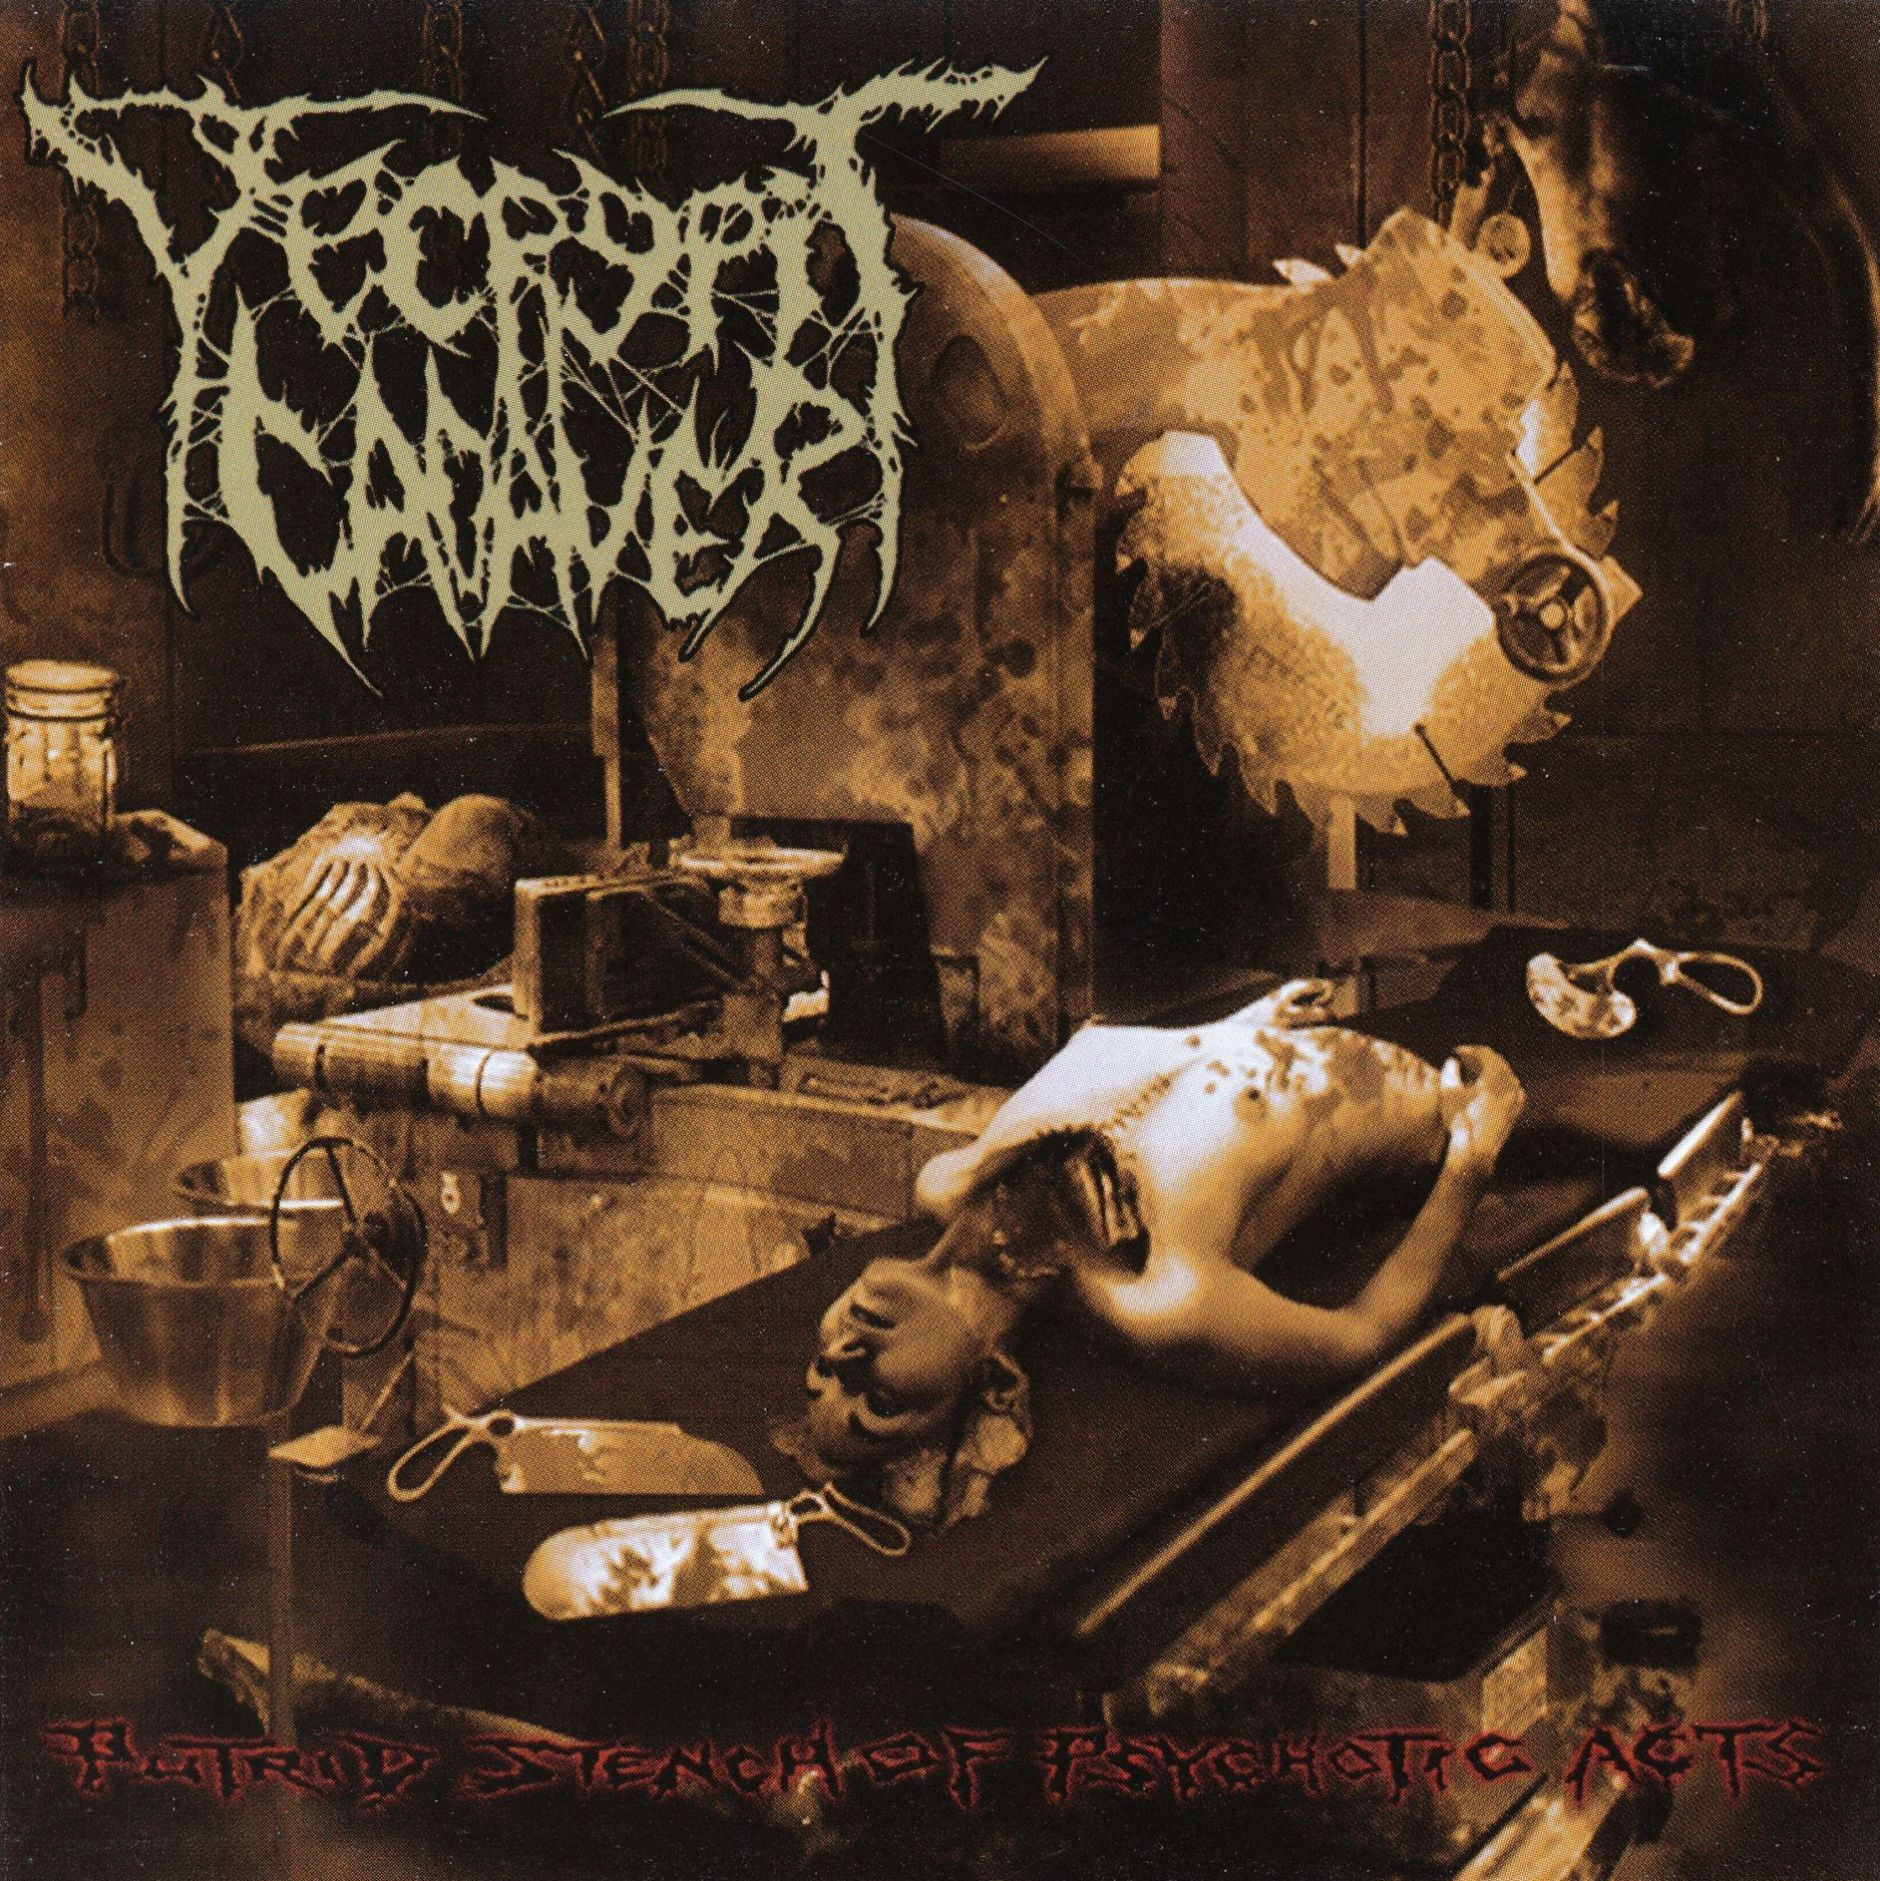 Decrepit_Cadaver-Putrid_Stench_Of_Psychotic_Acts